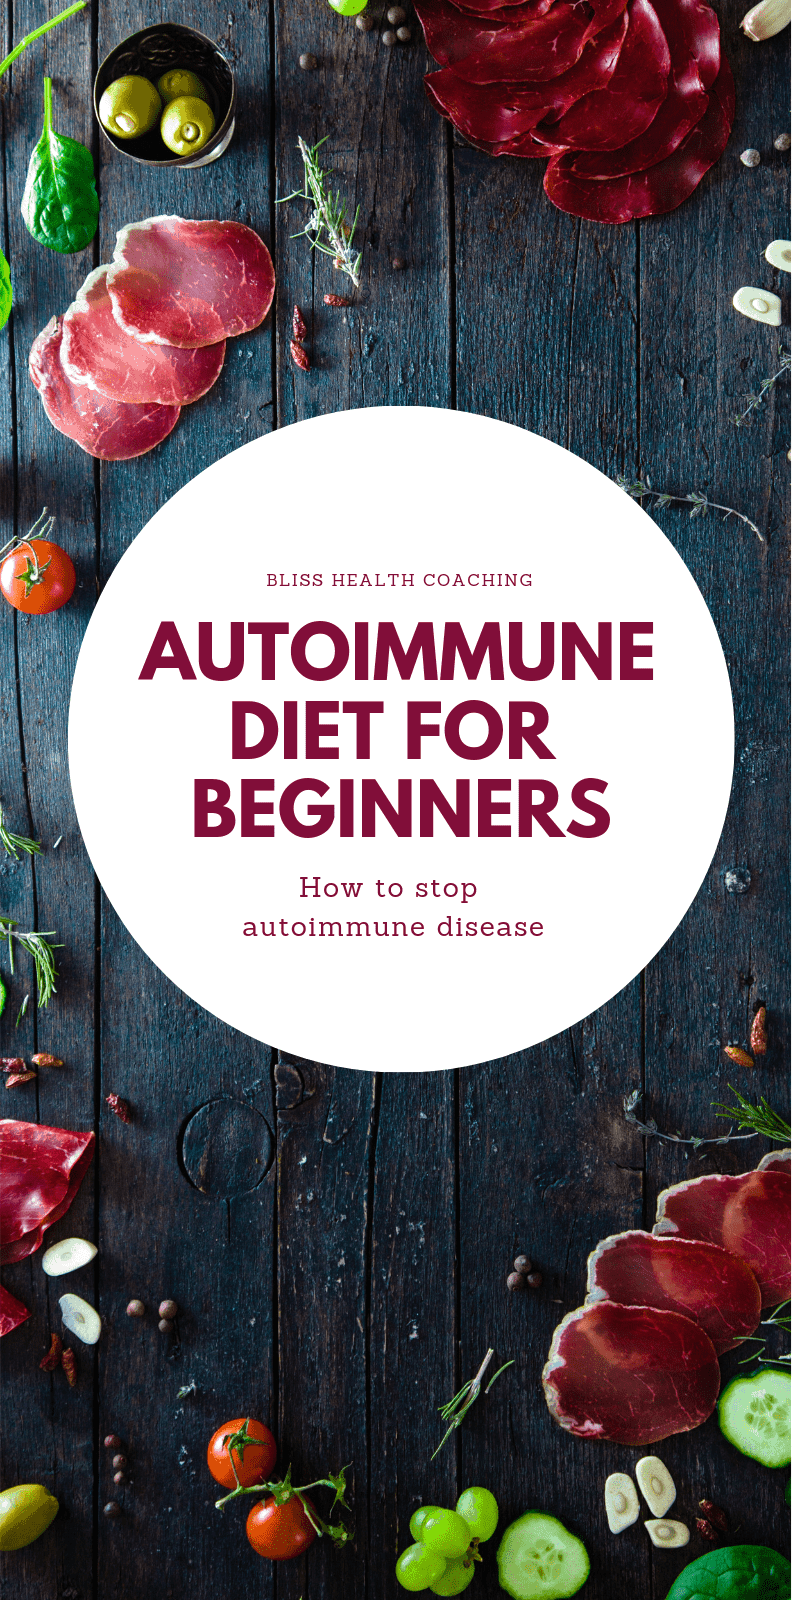 Are you struggling to find Autoimmune Paleo foods that are convenient? Starting the AIP diet doesn't have to be hard. Find out how you can eliminate autoimmune symptoms and get started today.  #autoimmunepaleo #thyroiditis #lupus #hashimotos